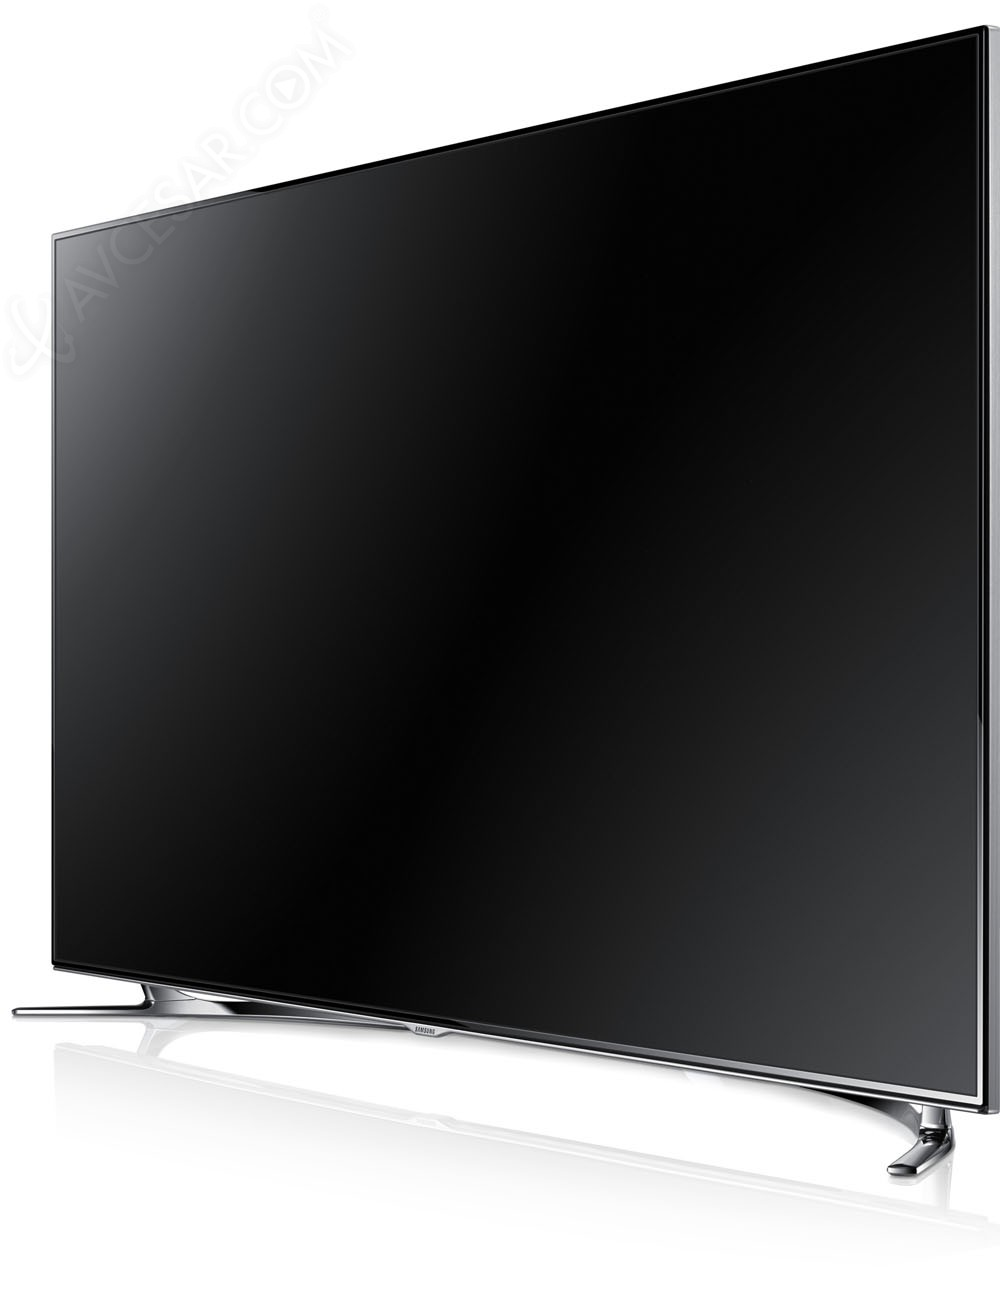 tv led samsung f8000 mise jour prix indicatifs. Black Bedroom Furniture Sets. Home Design Ideas